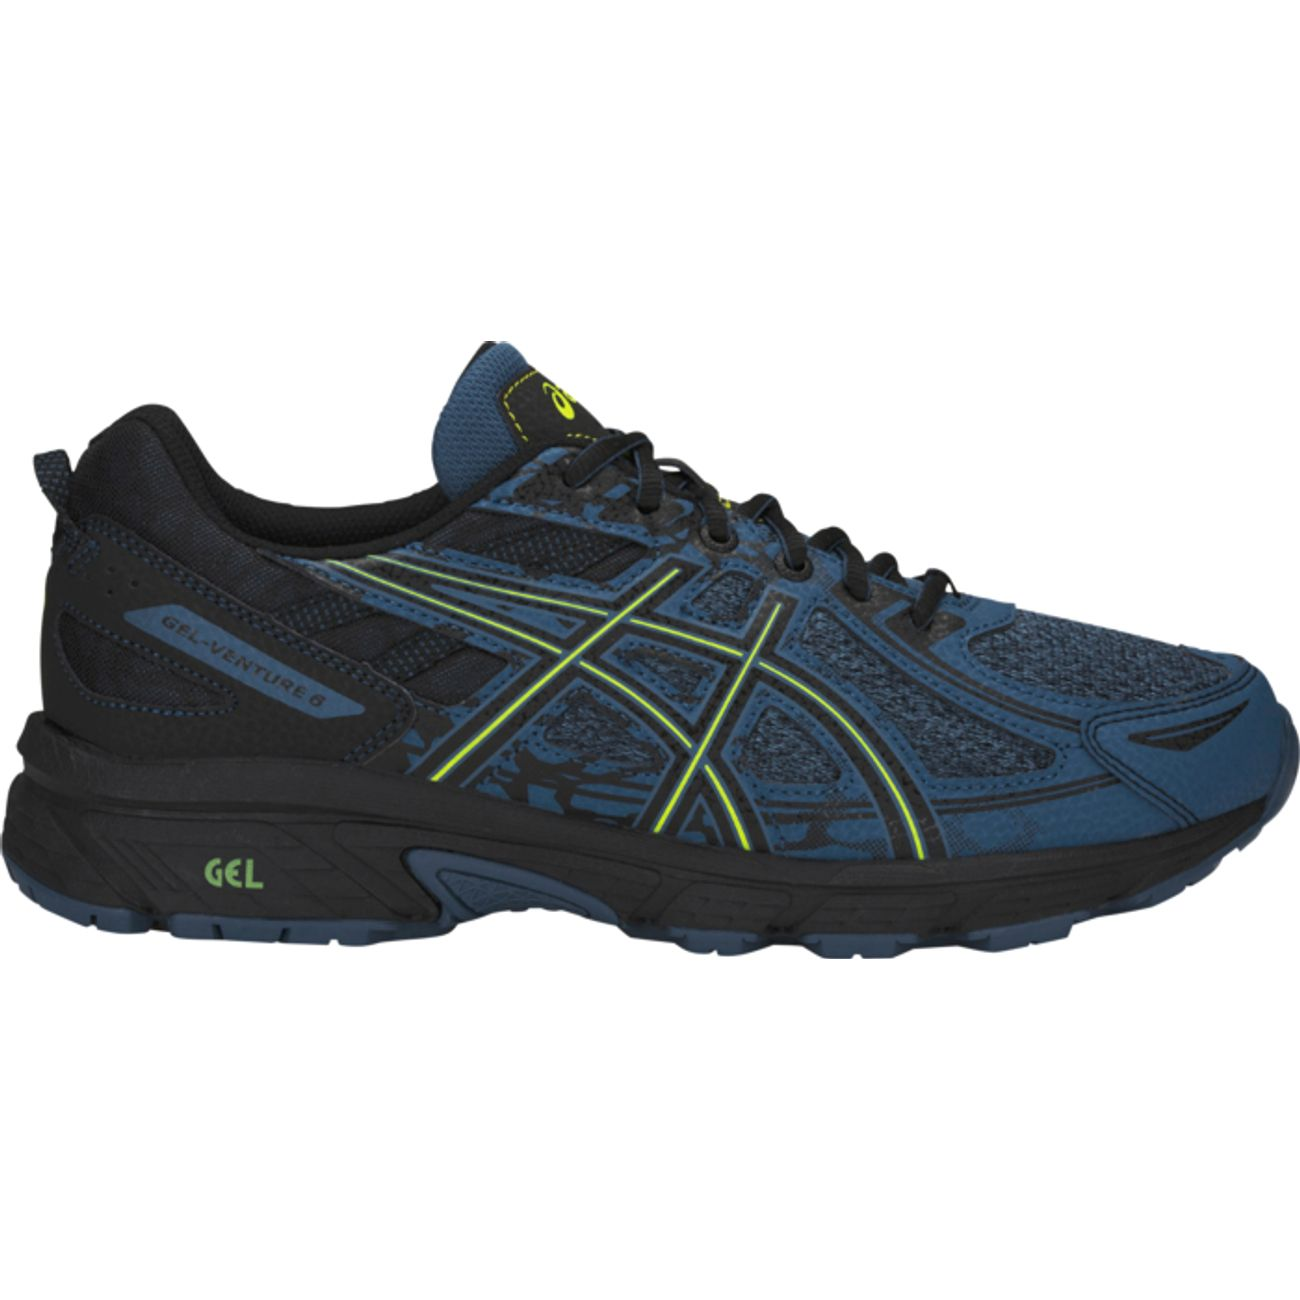 CHAUSSURES BASSES Trail homme ASICS GEL VENTURE 6